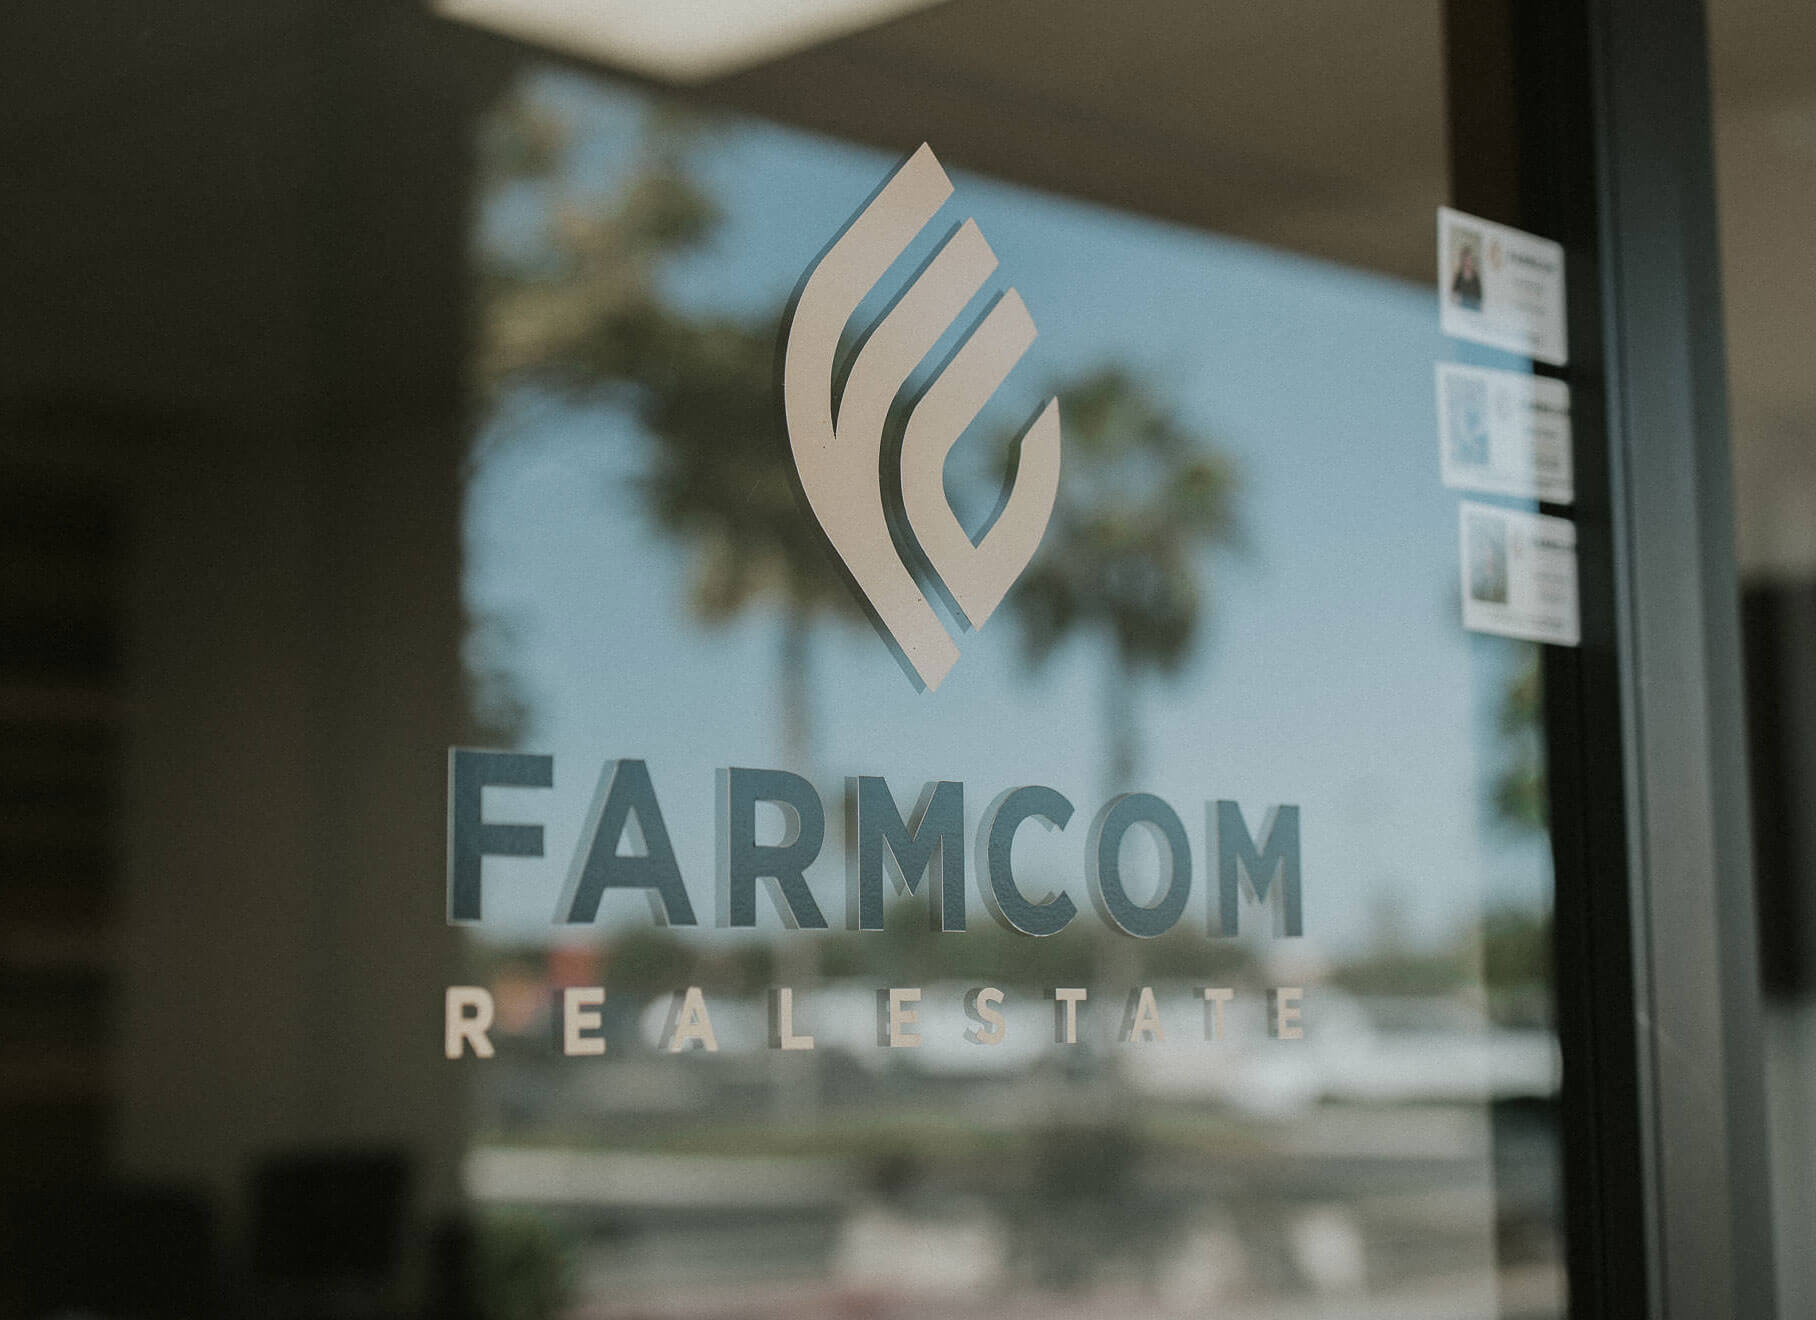 Contact Kevin Deniz - Farmcom Real Estate